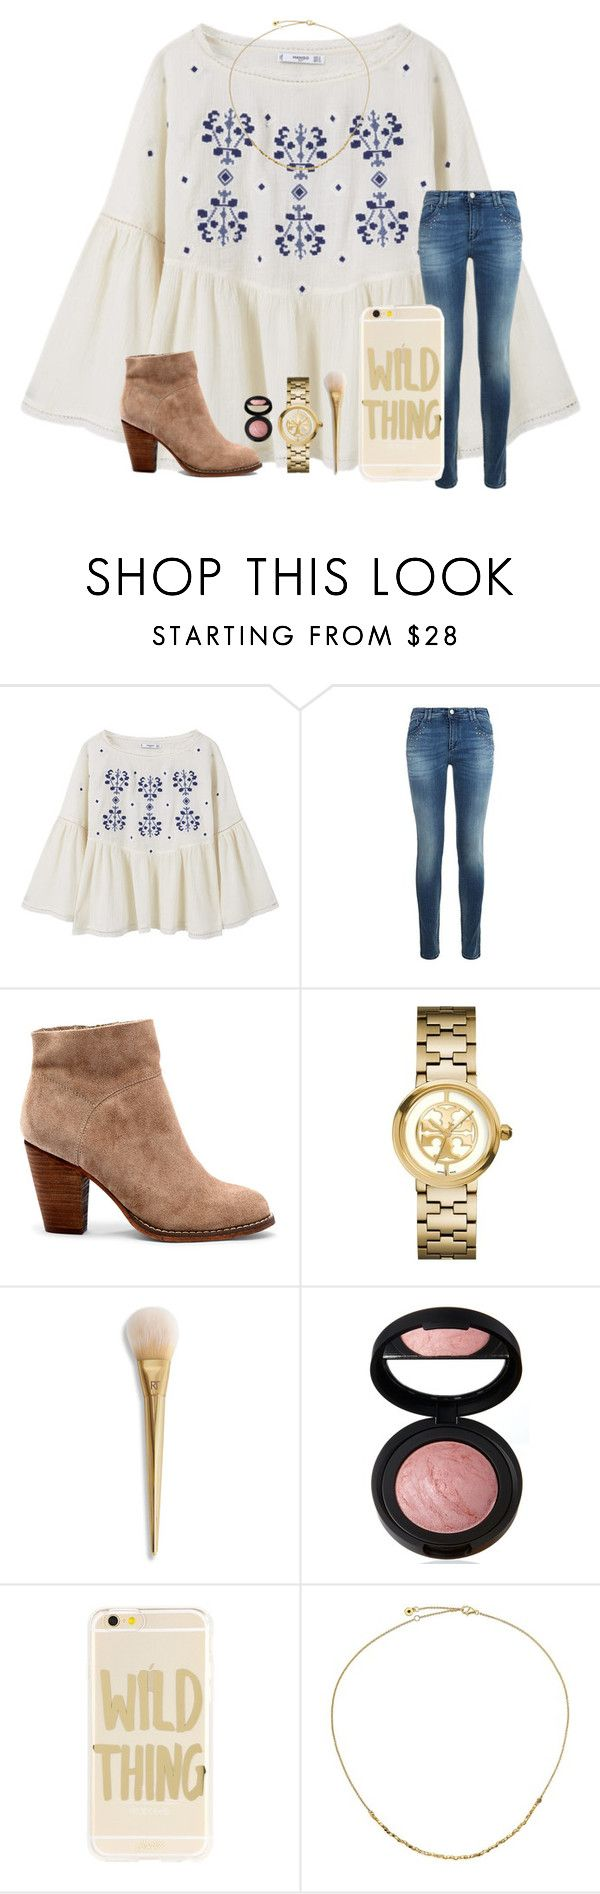 """Day 3 • how many times Will you walk away I just got to let you know that I am not trying to start a fire with this flame•"" by kari-luvs-u-2 ❤ liked on Polyvore featuring MANGO, Armani Jeans, Sole Society, Tory Burch, Laura Geller, Sonix and Astley Clarke"